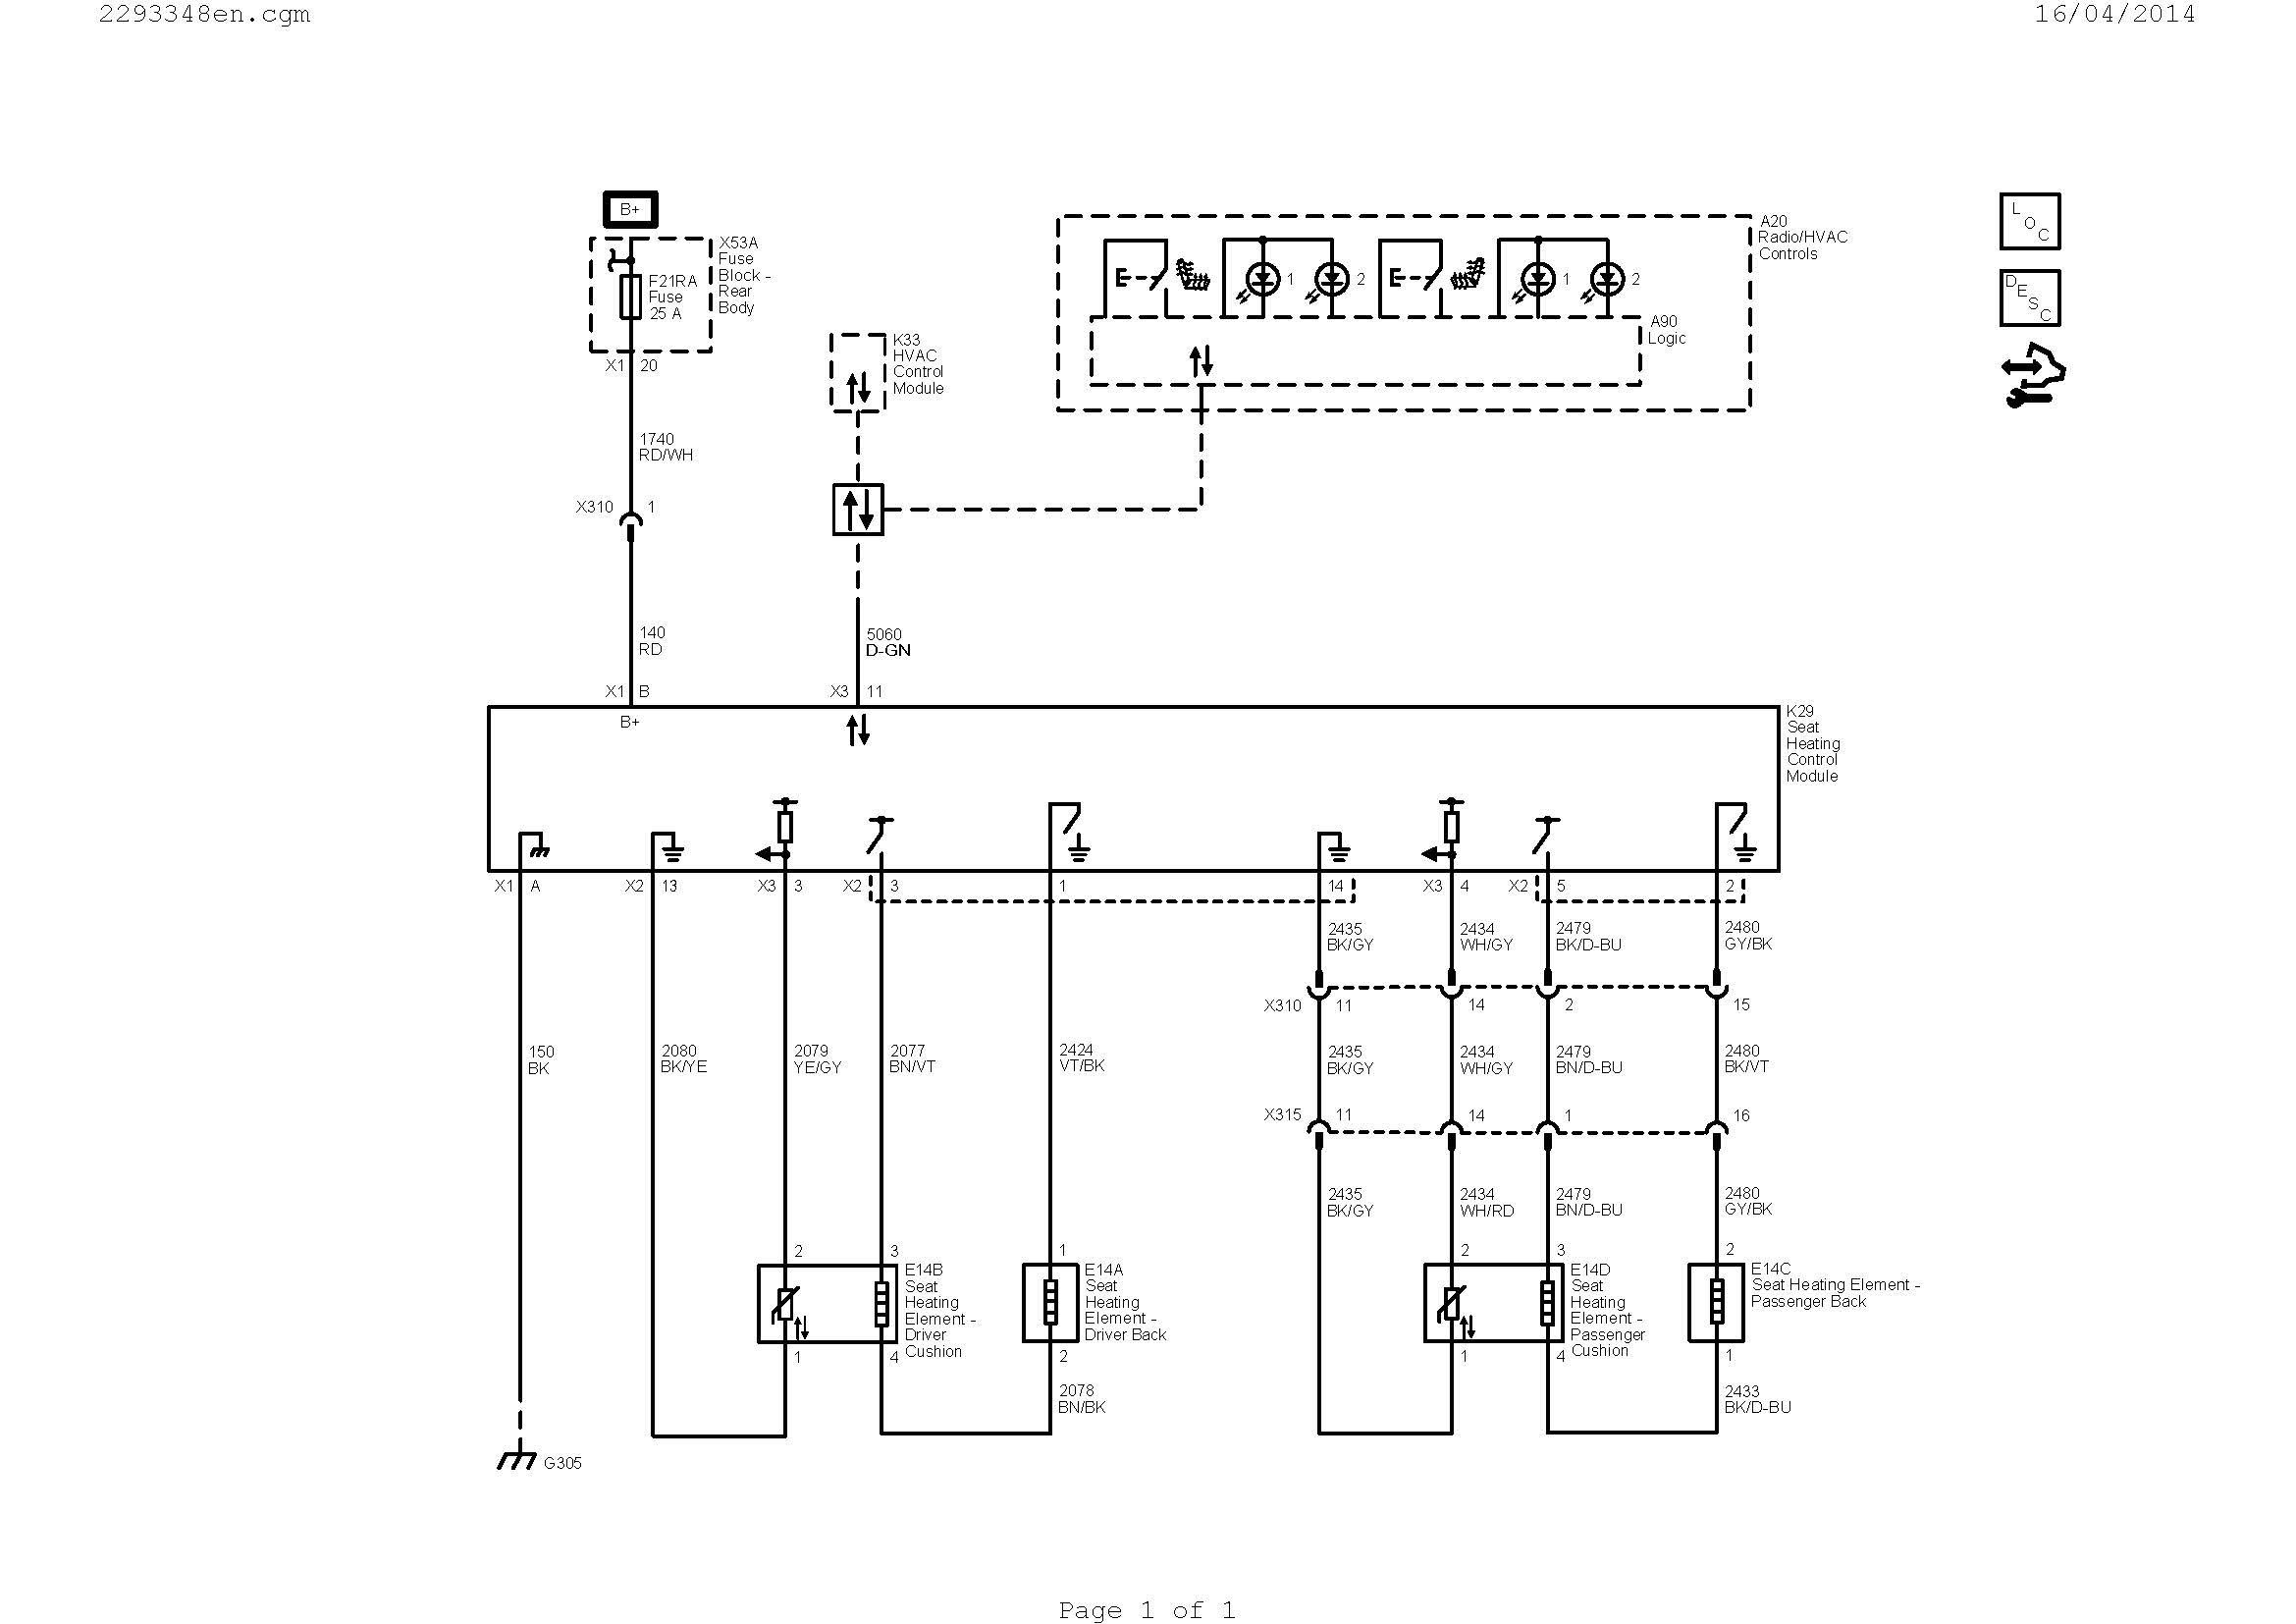 hobart h 600 wiring diagram Collection-ac thermostat wiring diagram Collection Wiring A Ac thermostat Diagram New Wiring Diagram Ac Valid 12-n